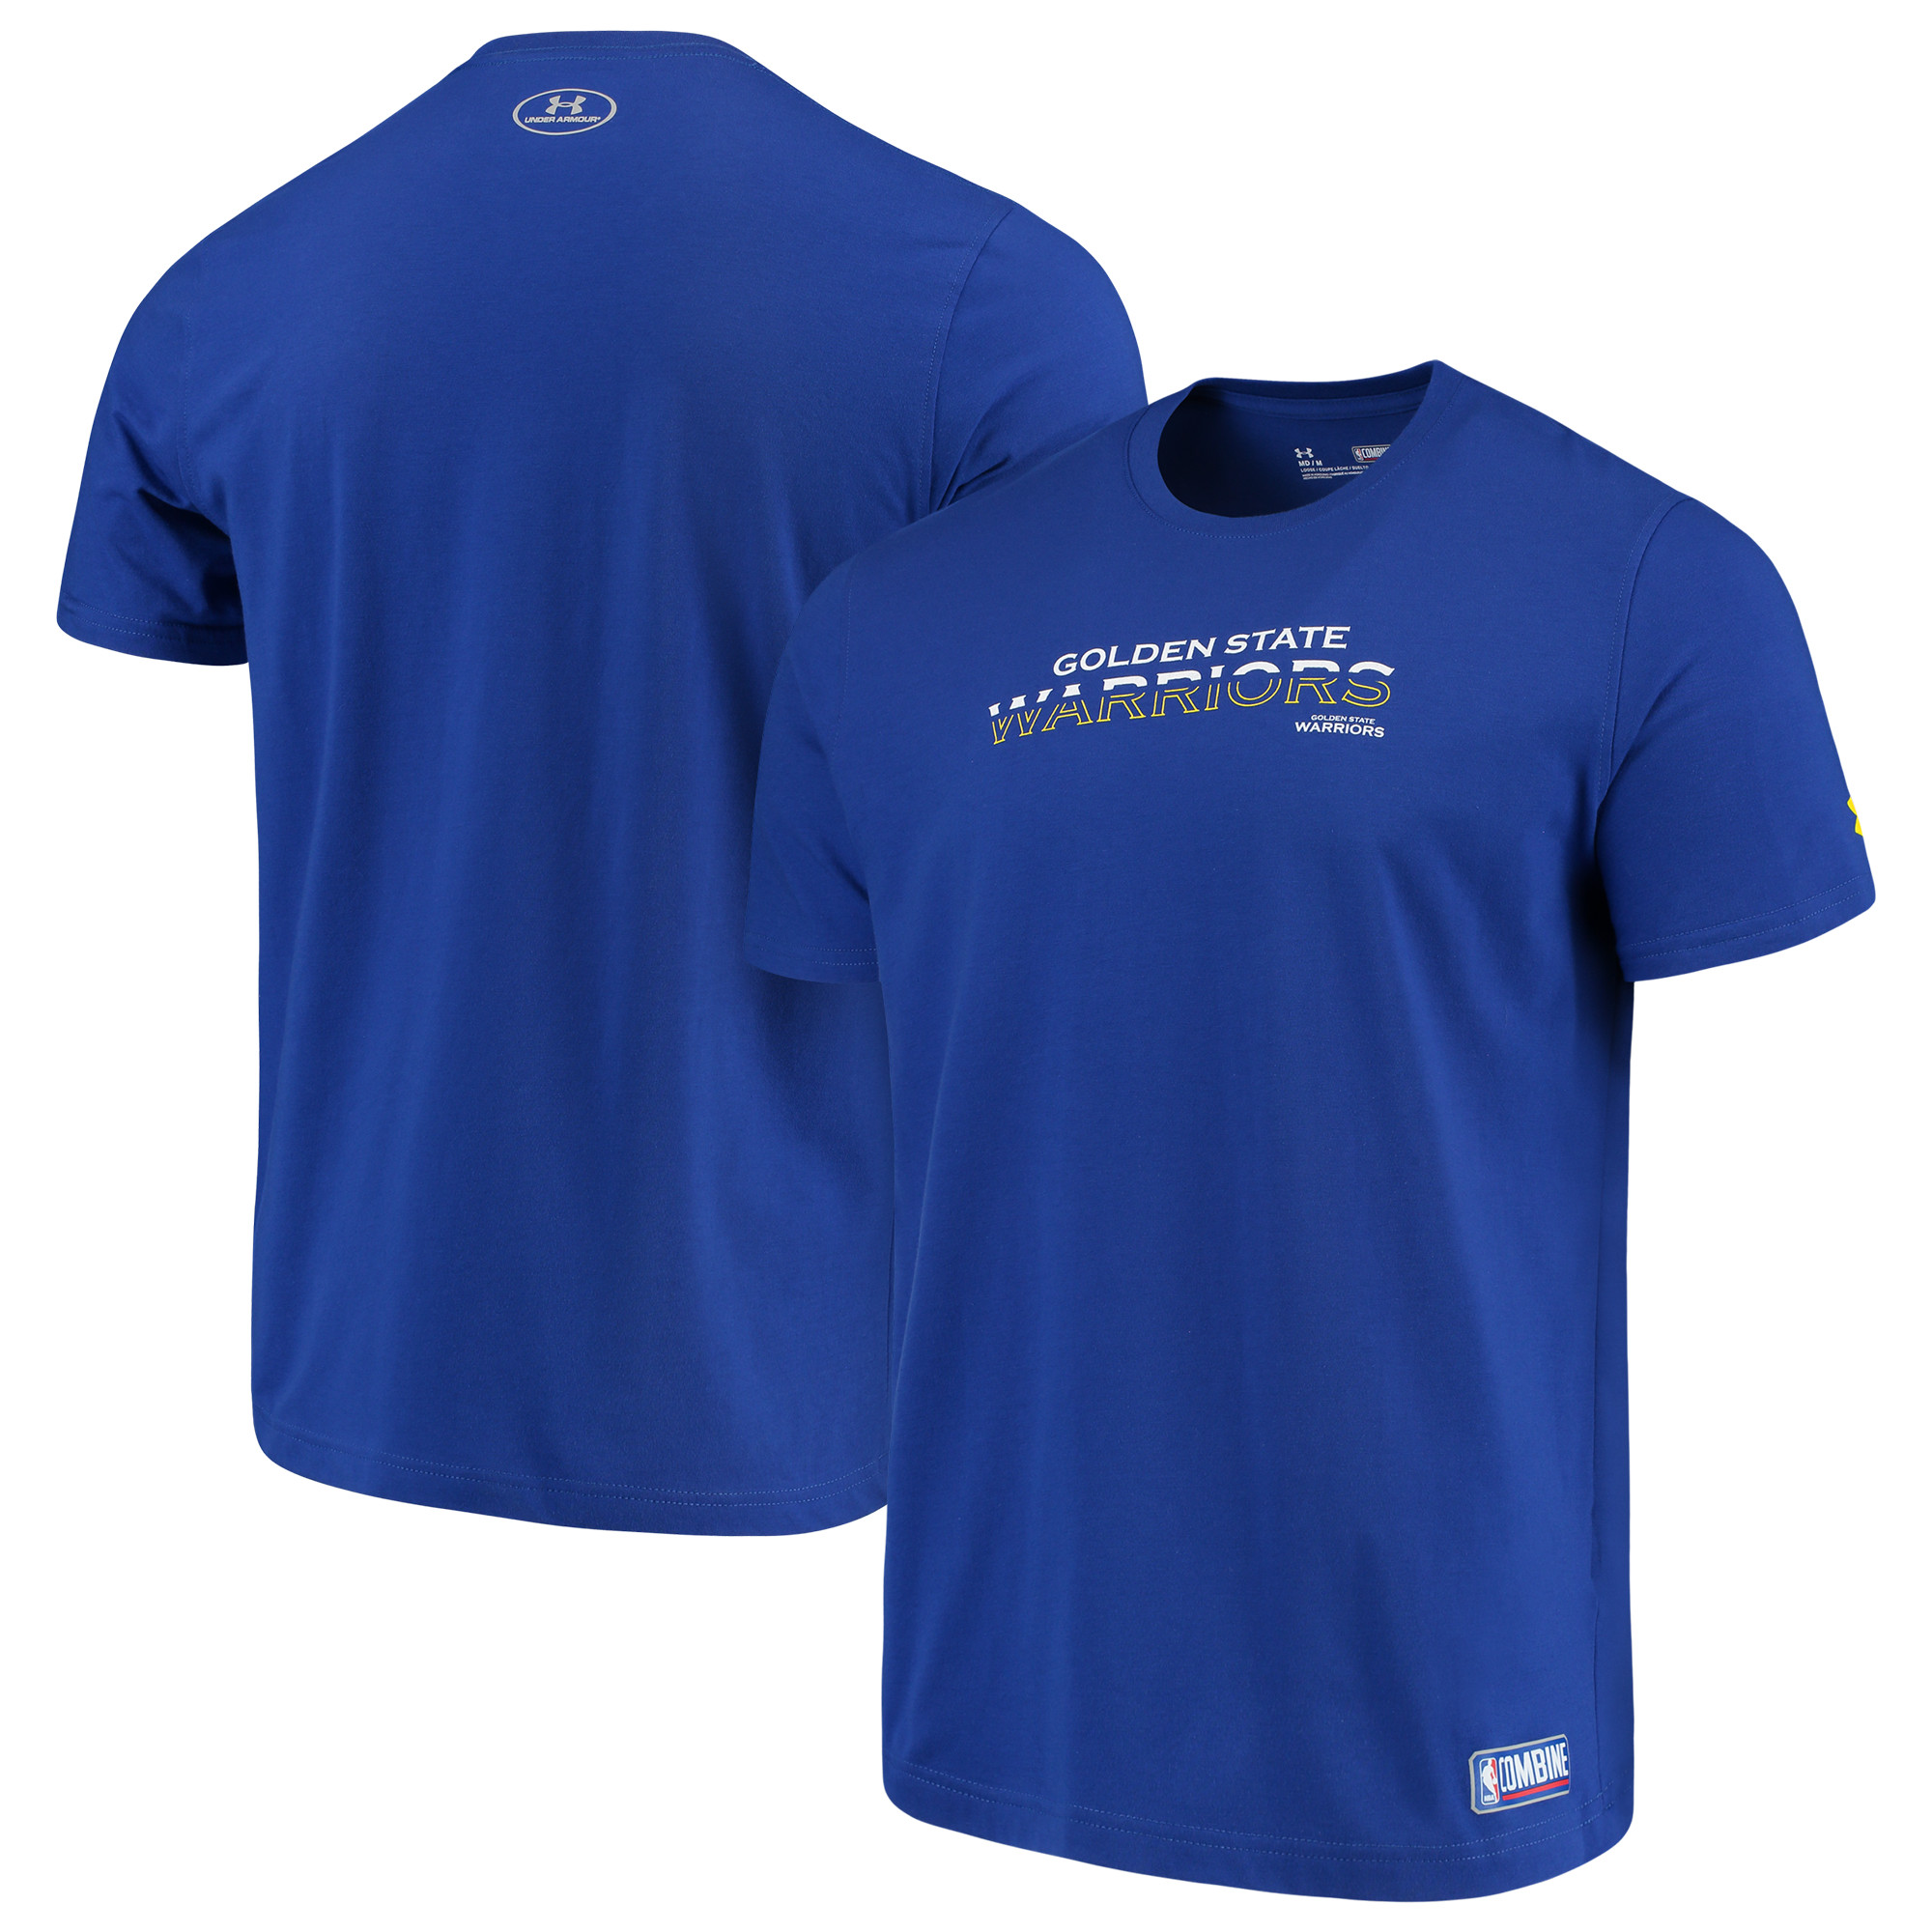 Golden State Warriors Under Armour Combine Authentic Start Your Story Performance Tri-Blend T-Shirt - Royal